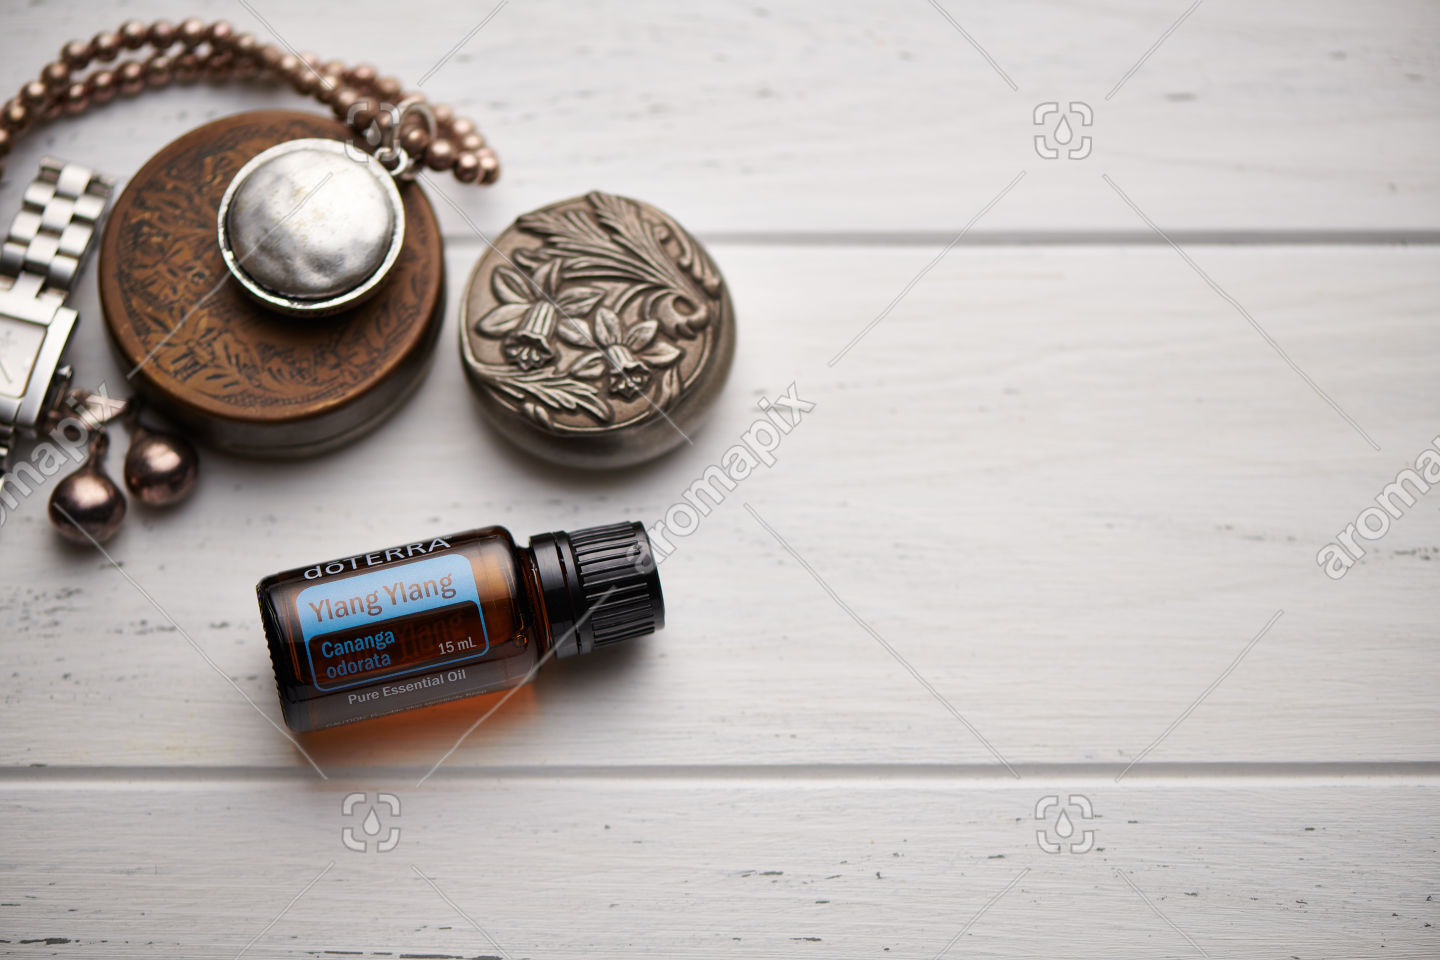 doTERRA Ylang Ylang on rustic background